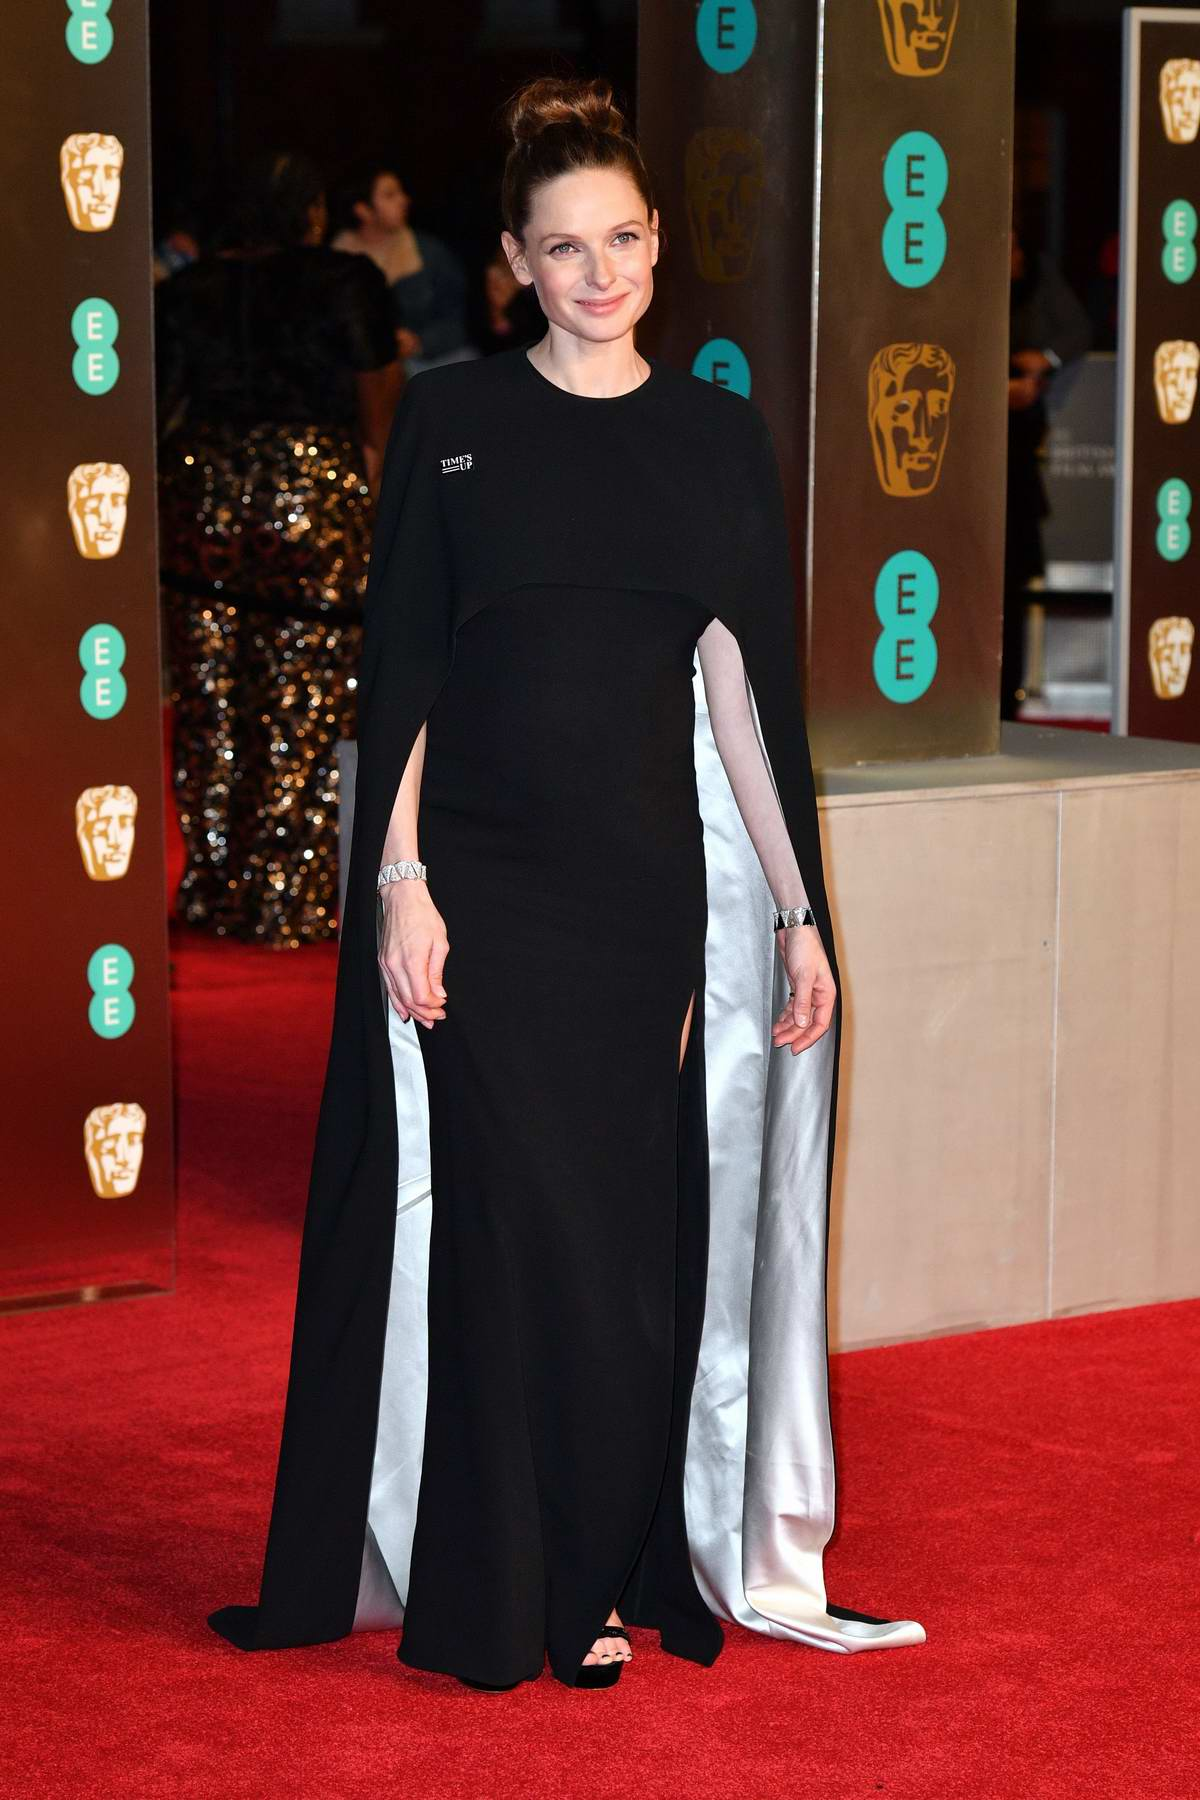 Rebecca Ferguson attends 71st British Academy Film Awards at Royal Albert Hall in London